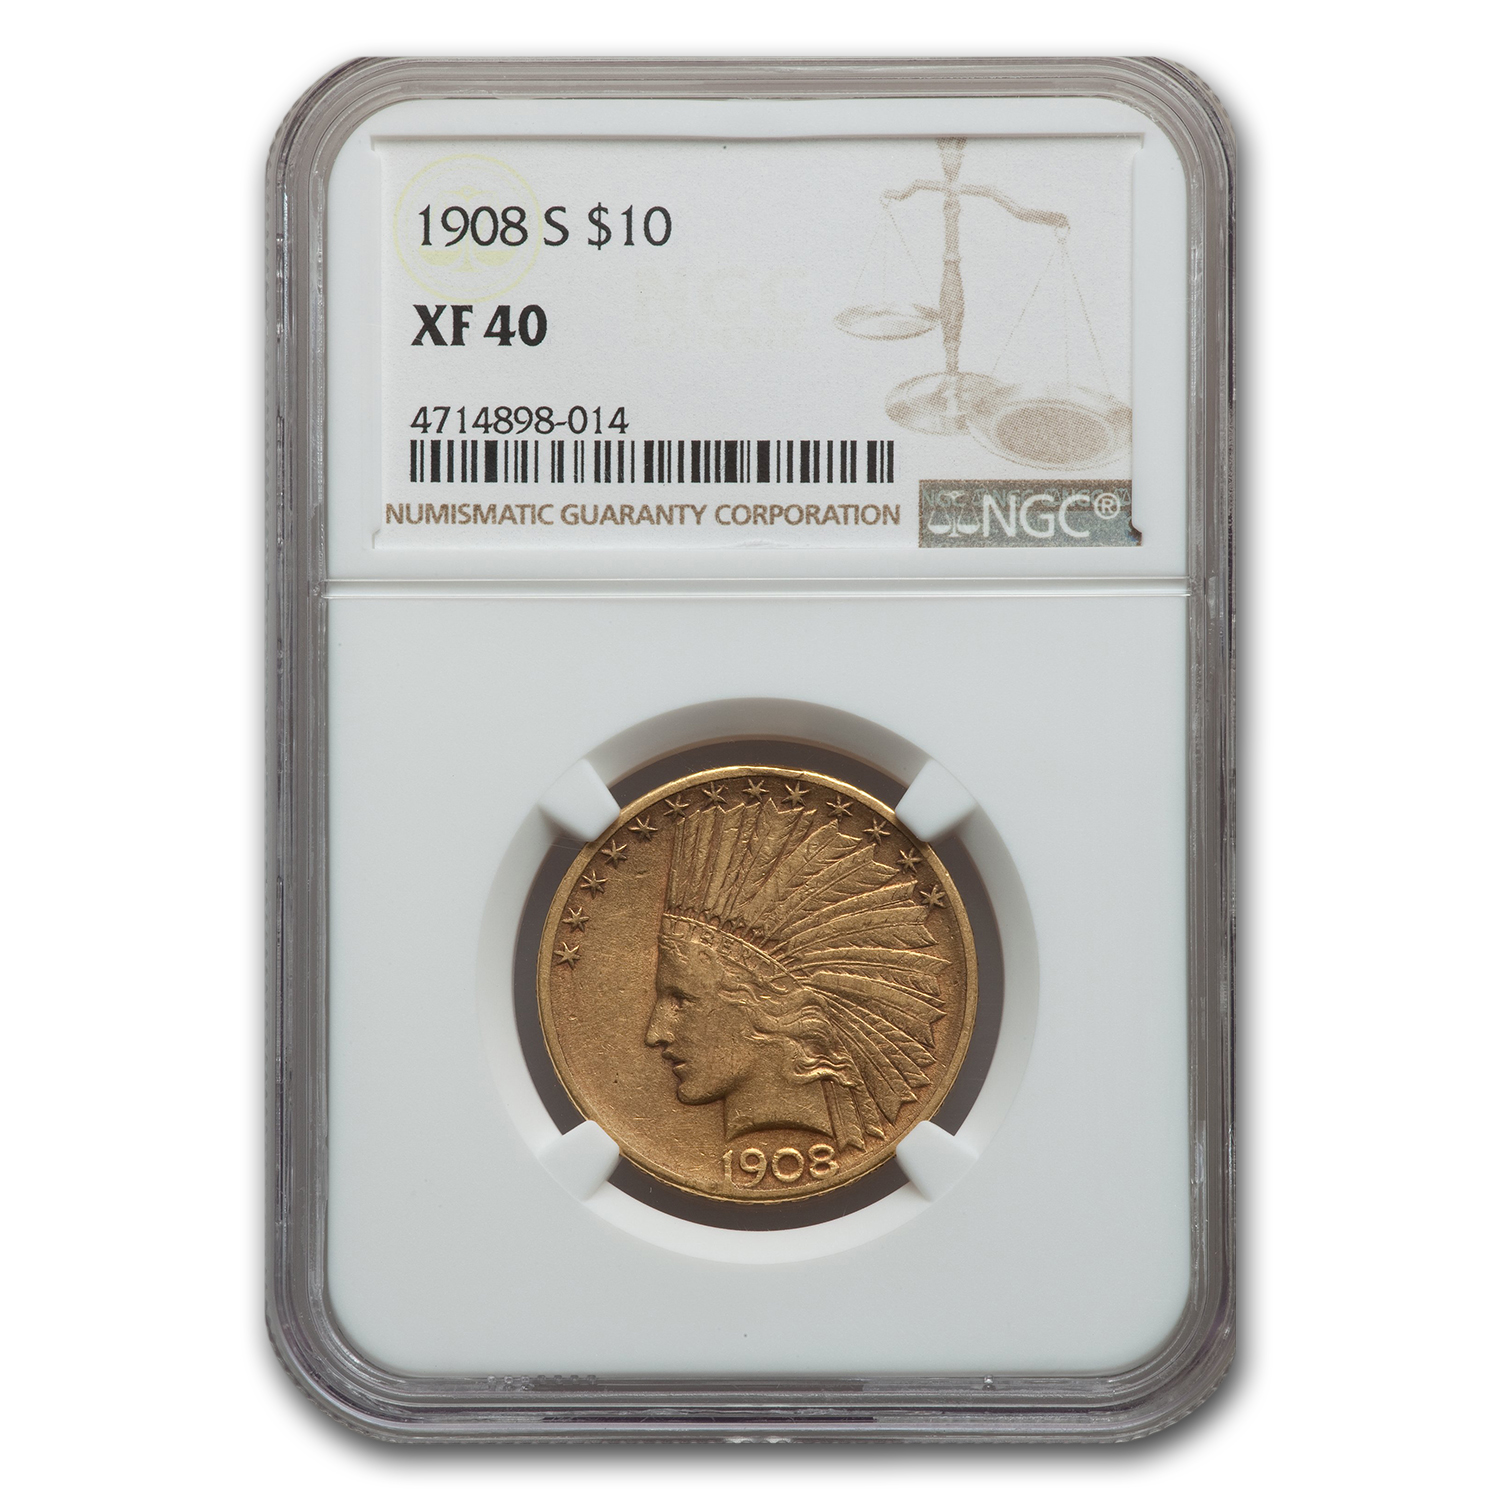 1908-S $10 Indian Gold Eagle - XF-40 NGC